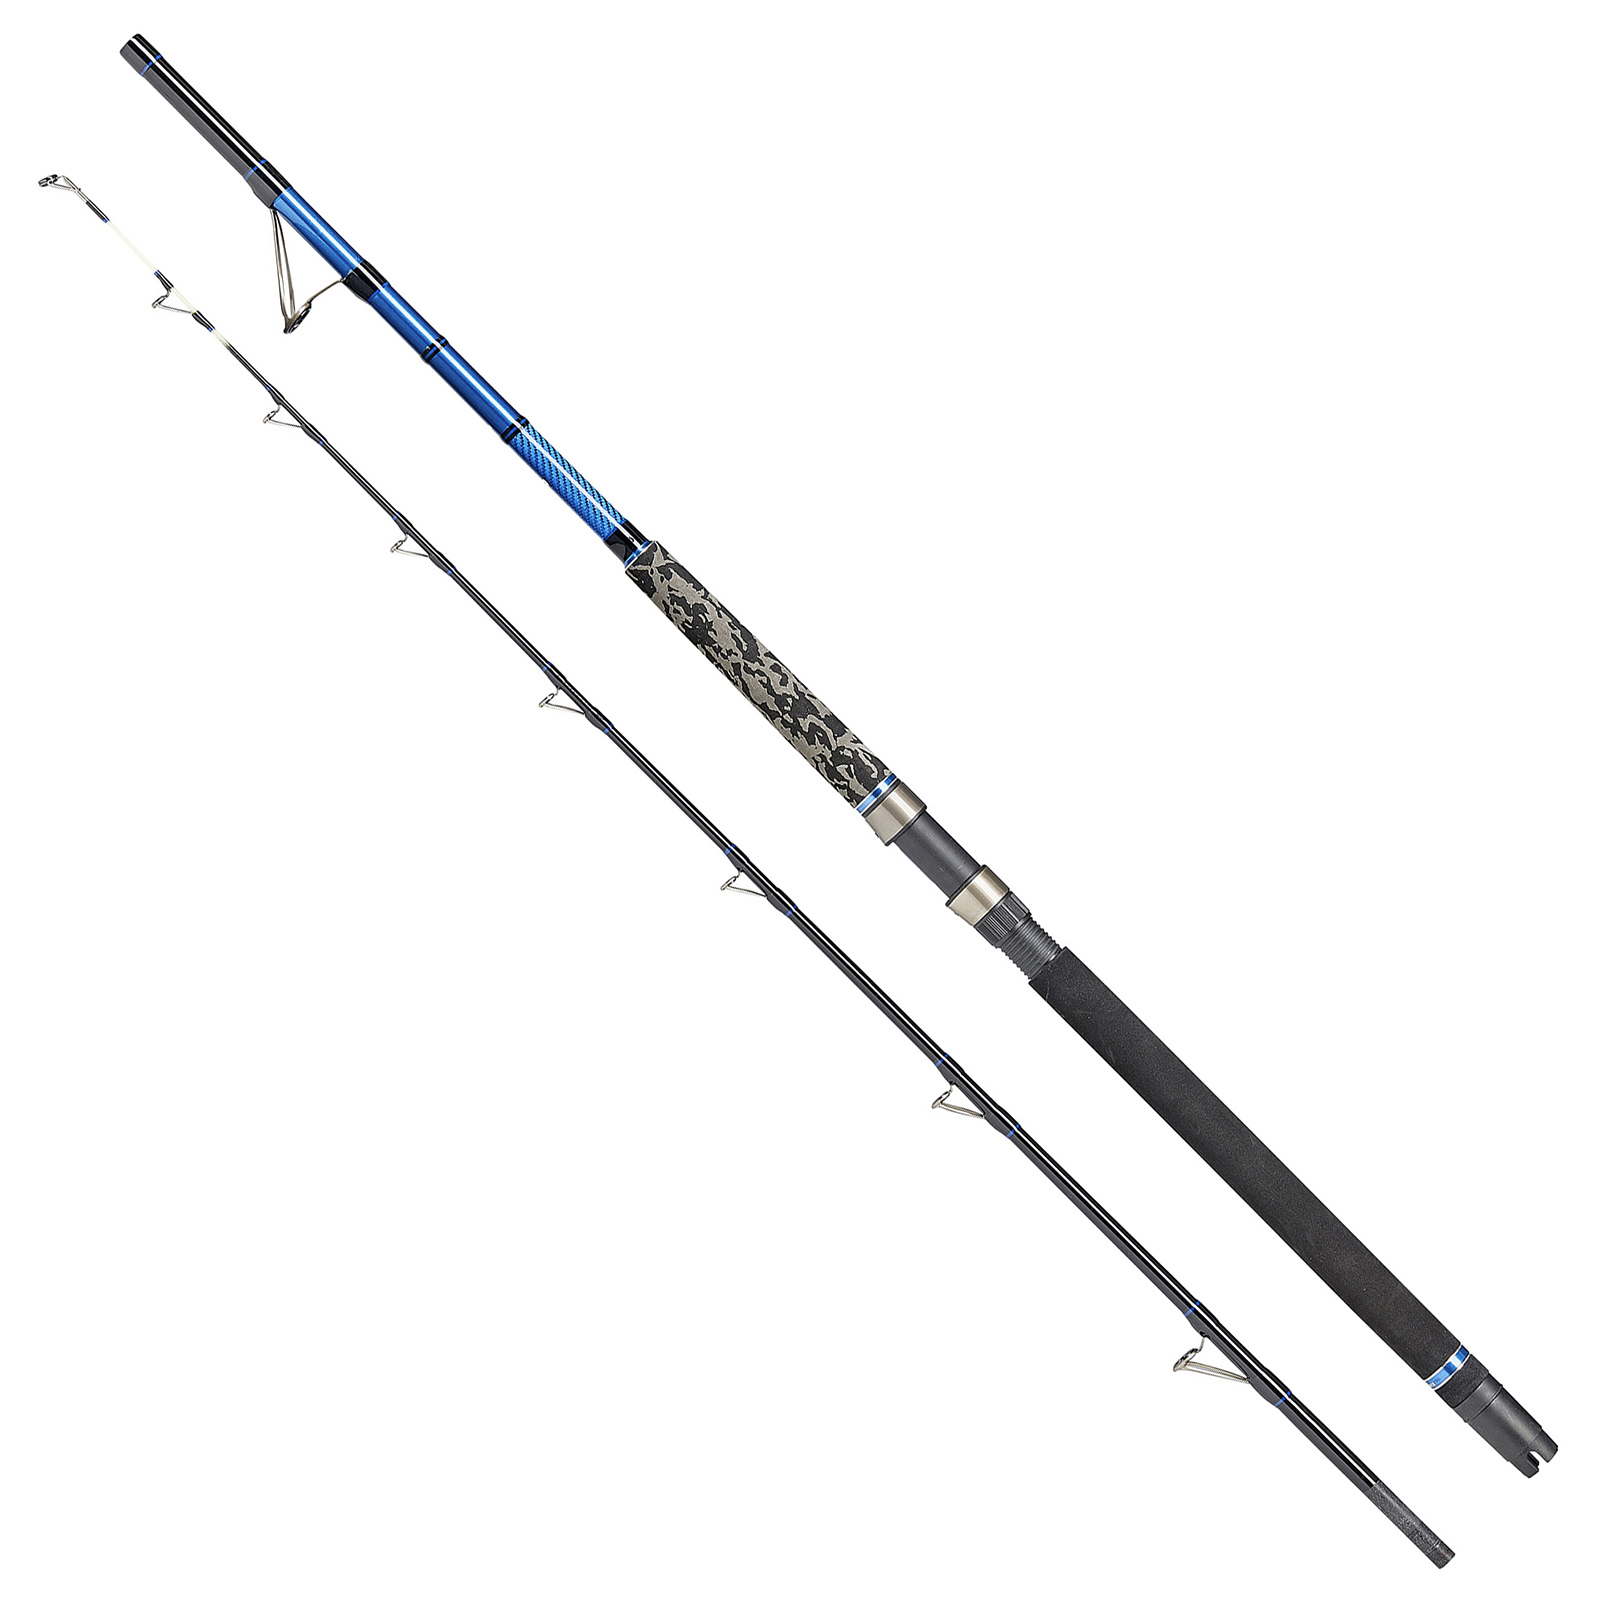 DAM Steelpower Blue Light Boat Powertip 2,40 m 20 lbs